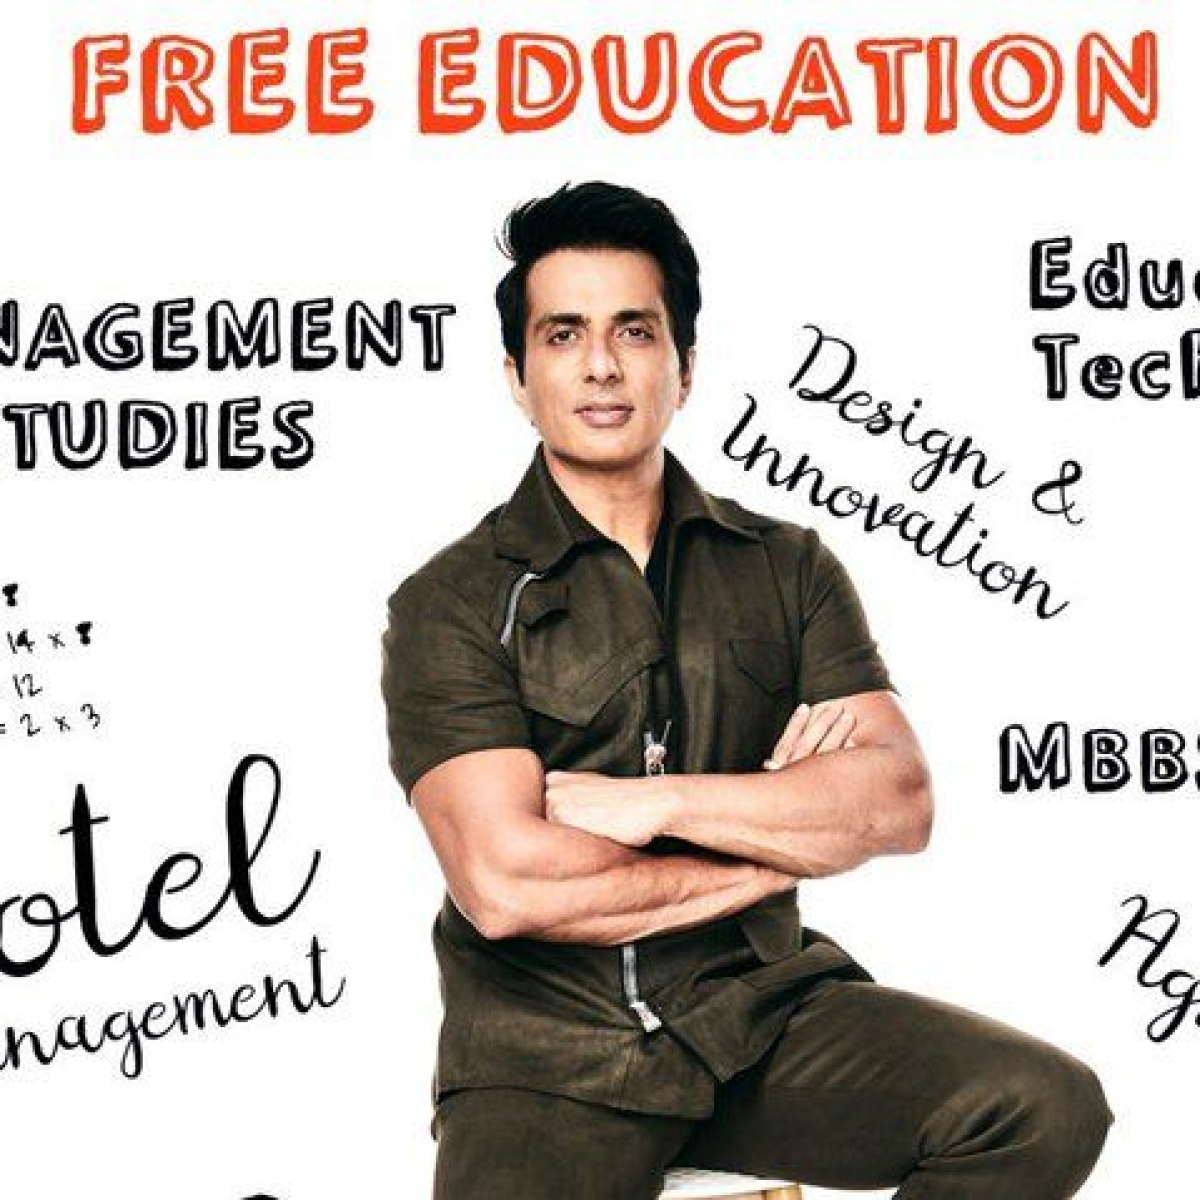 Can you spot the math error in Sonu Sood's scholarship poster?